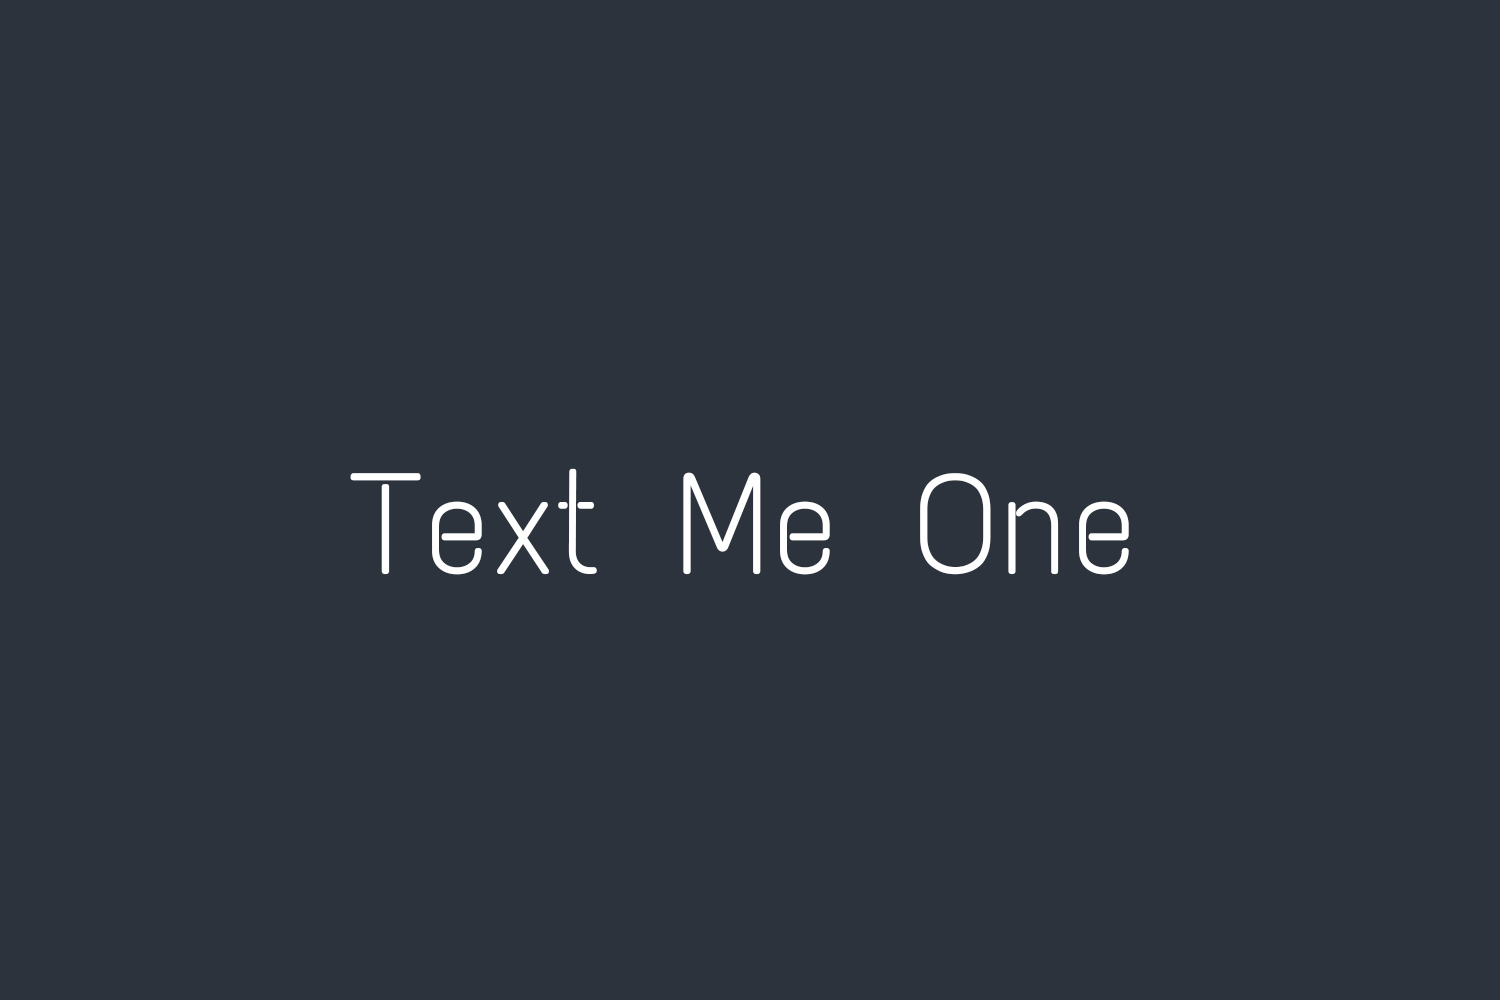 Text Me One